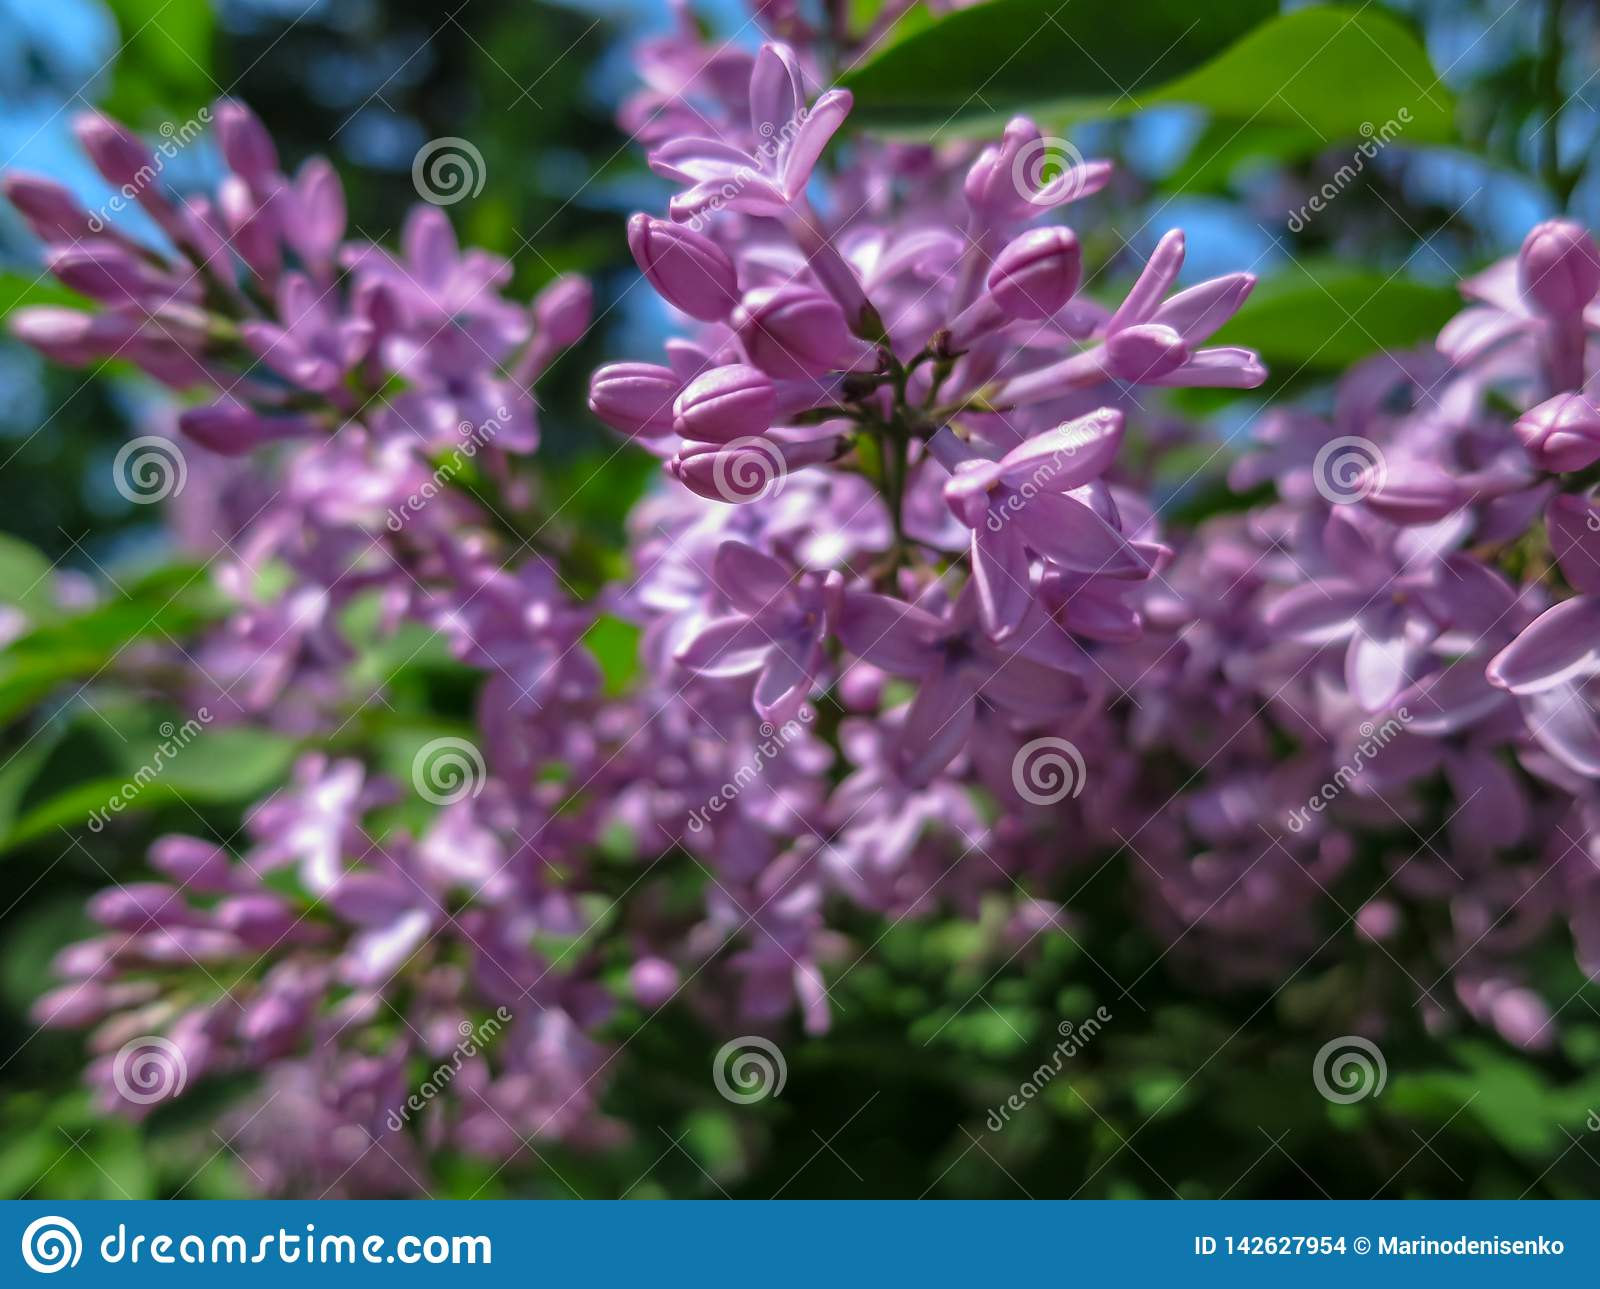 Soft blurred macro focus of pink lilac Syringa microphylla flowers on blurred bush. Spring bloom on a sunny day